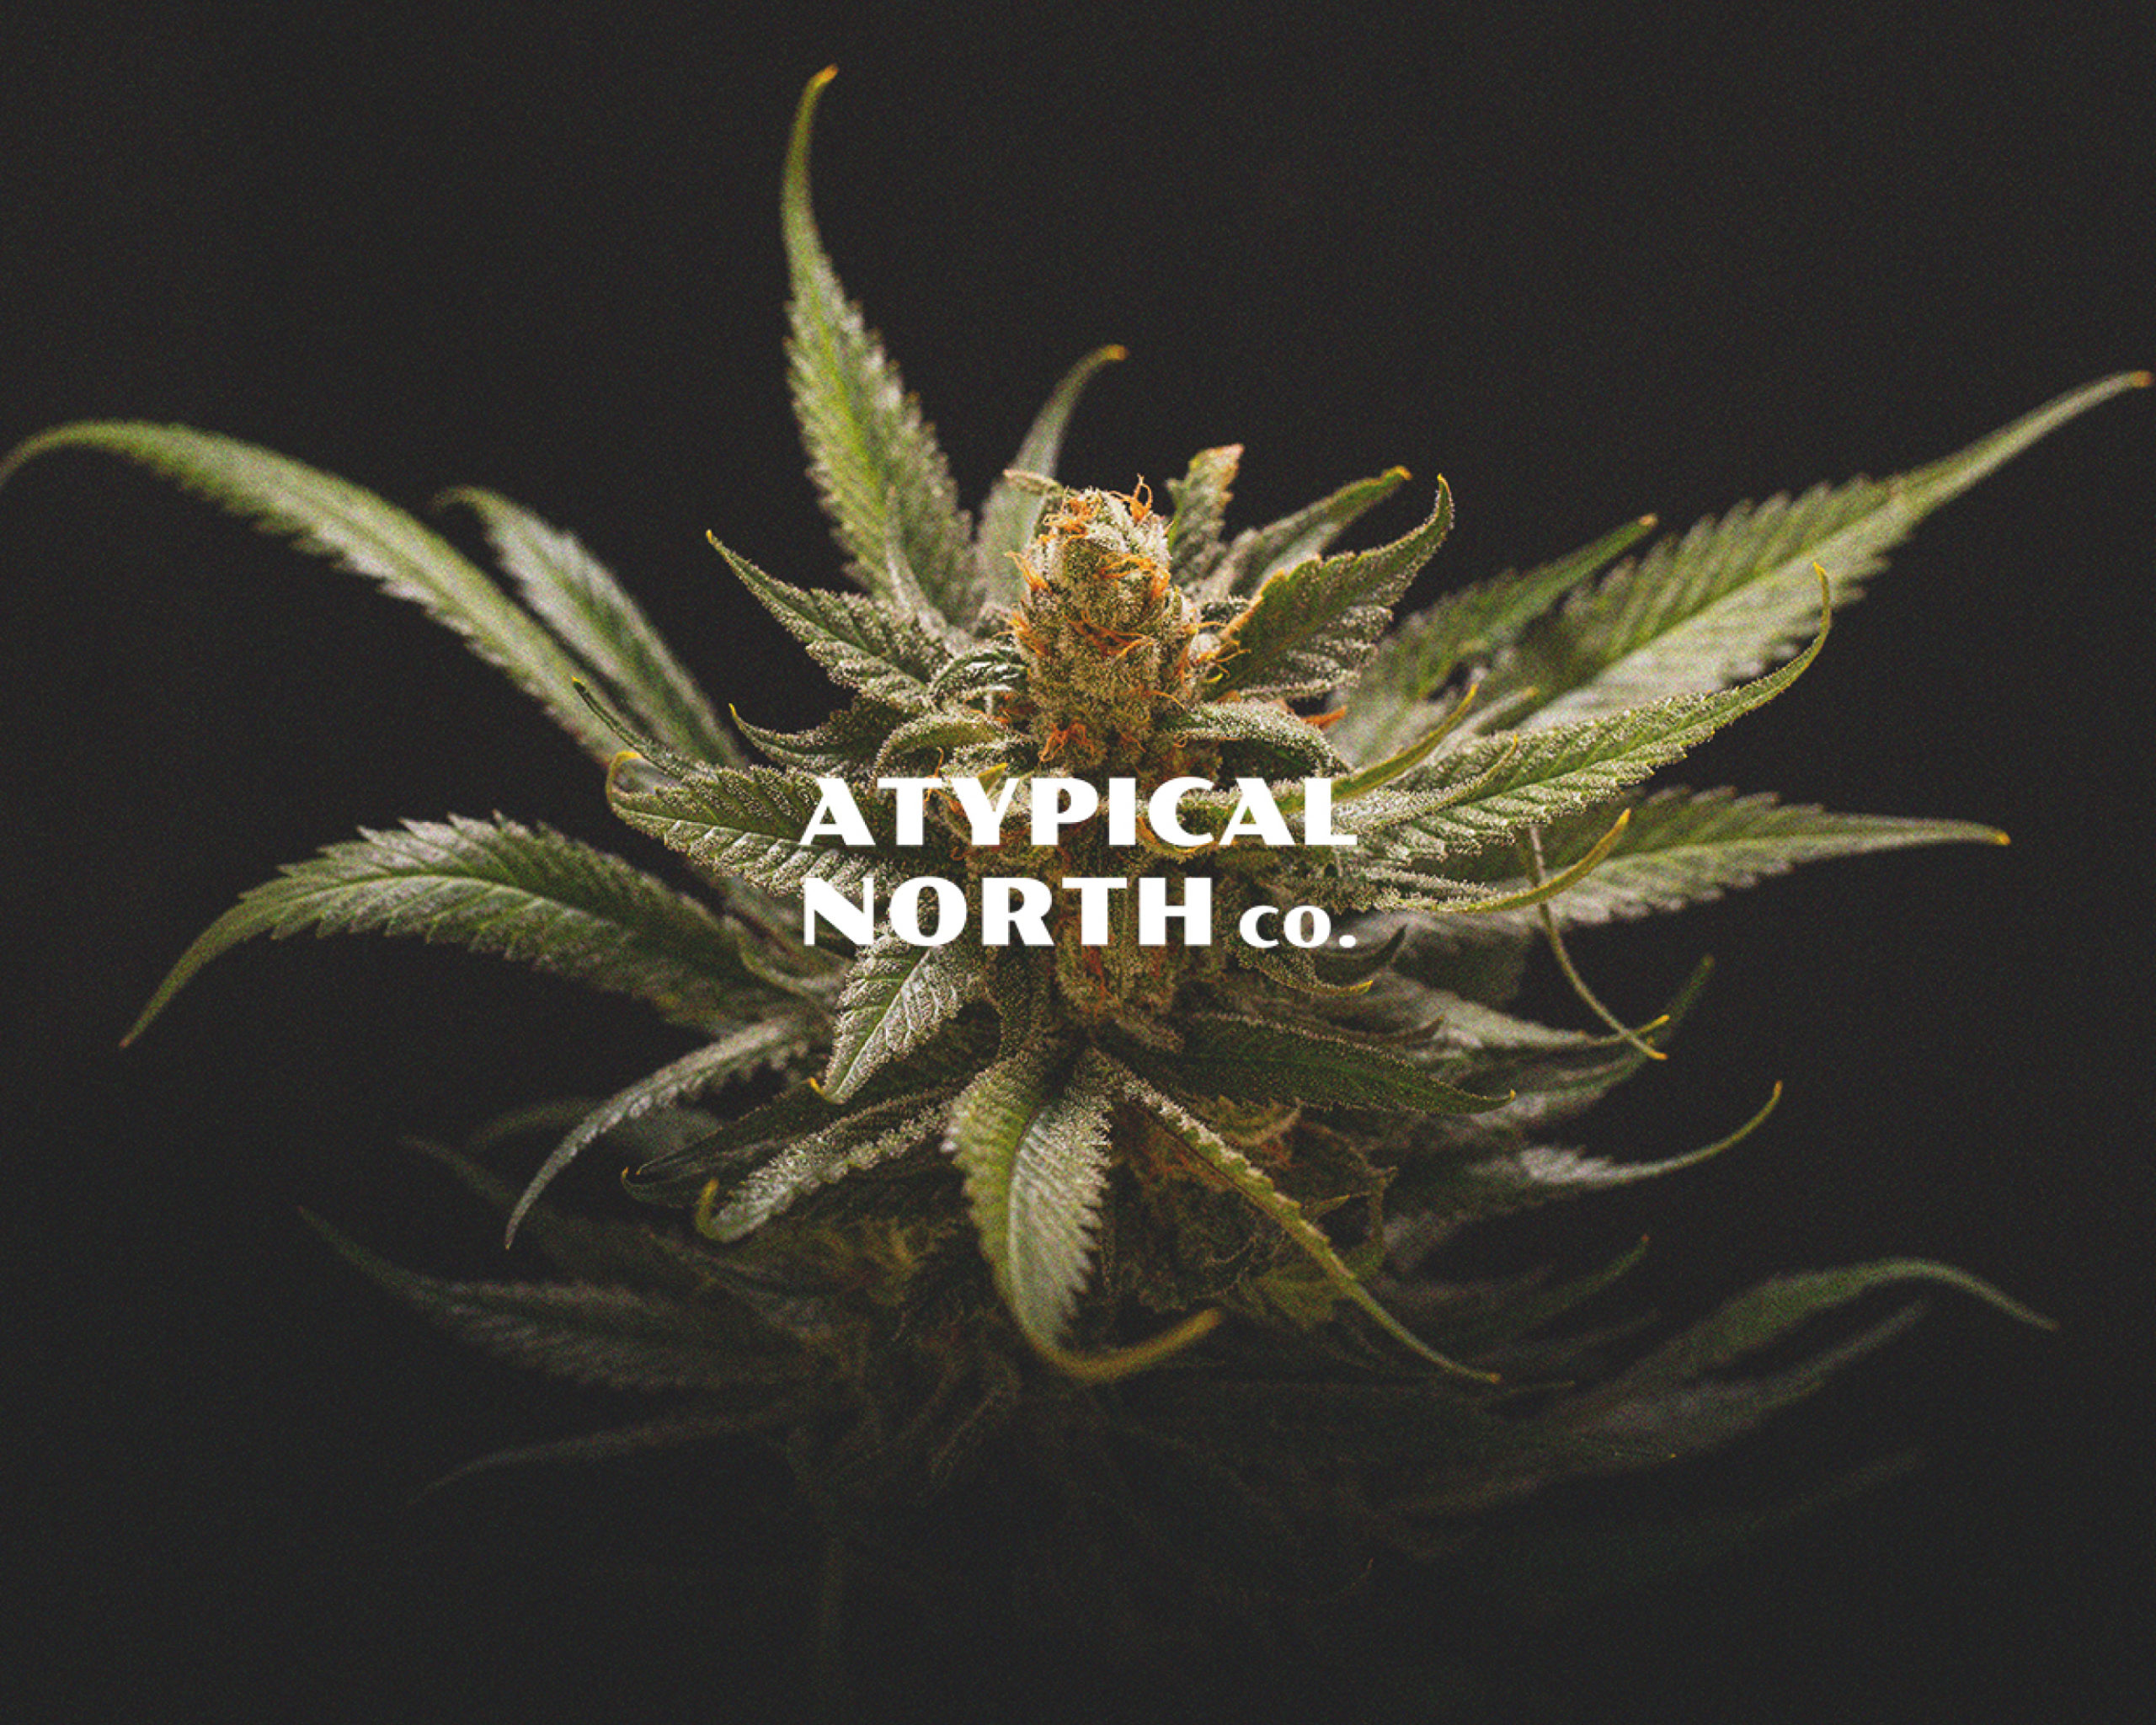 Atypical_north